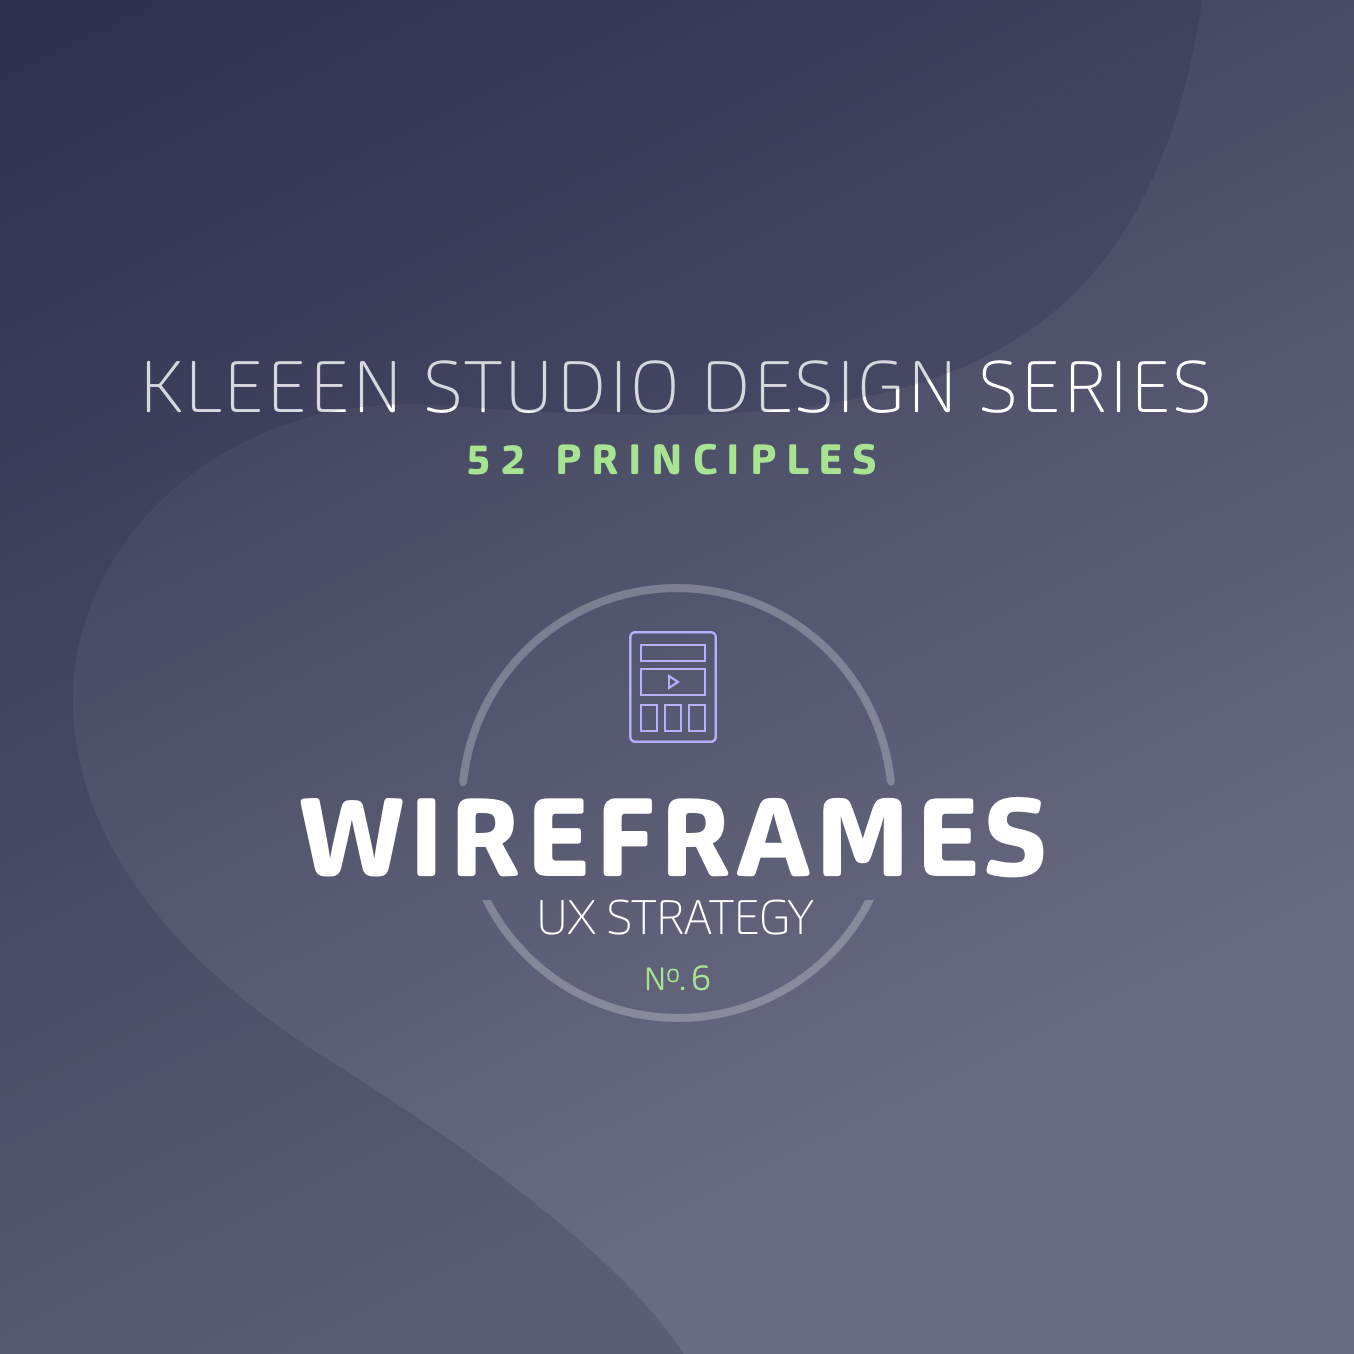 UXSTRATEGY-WIREFRAMES